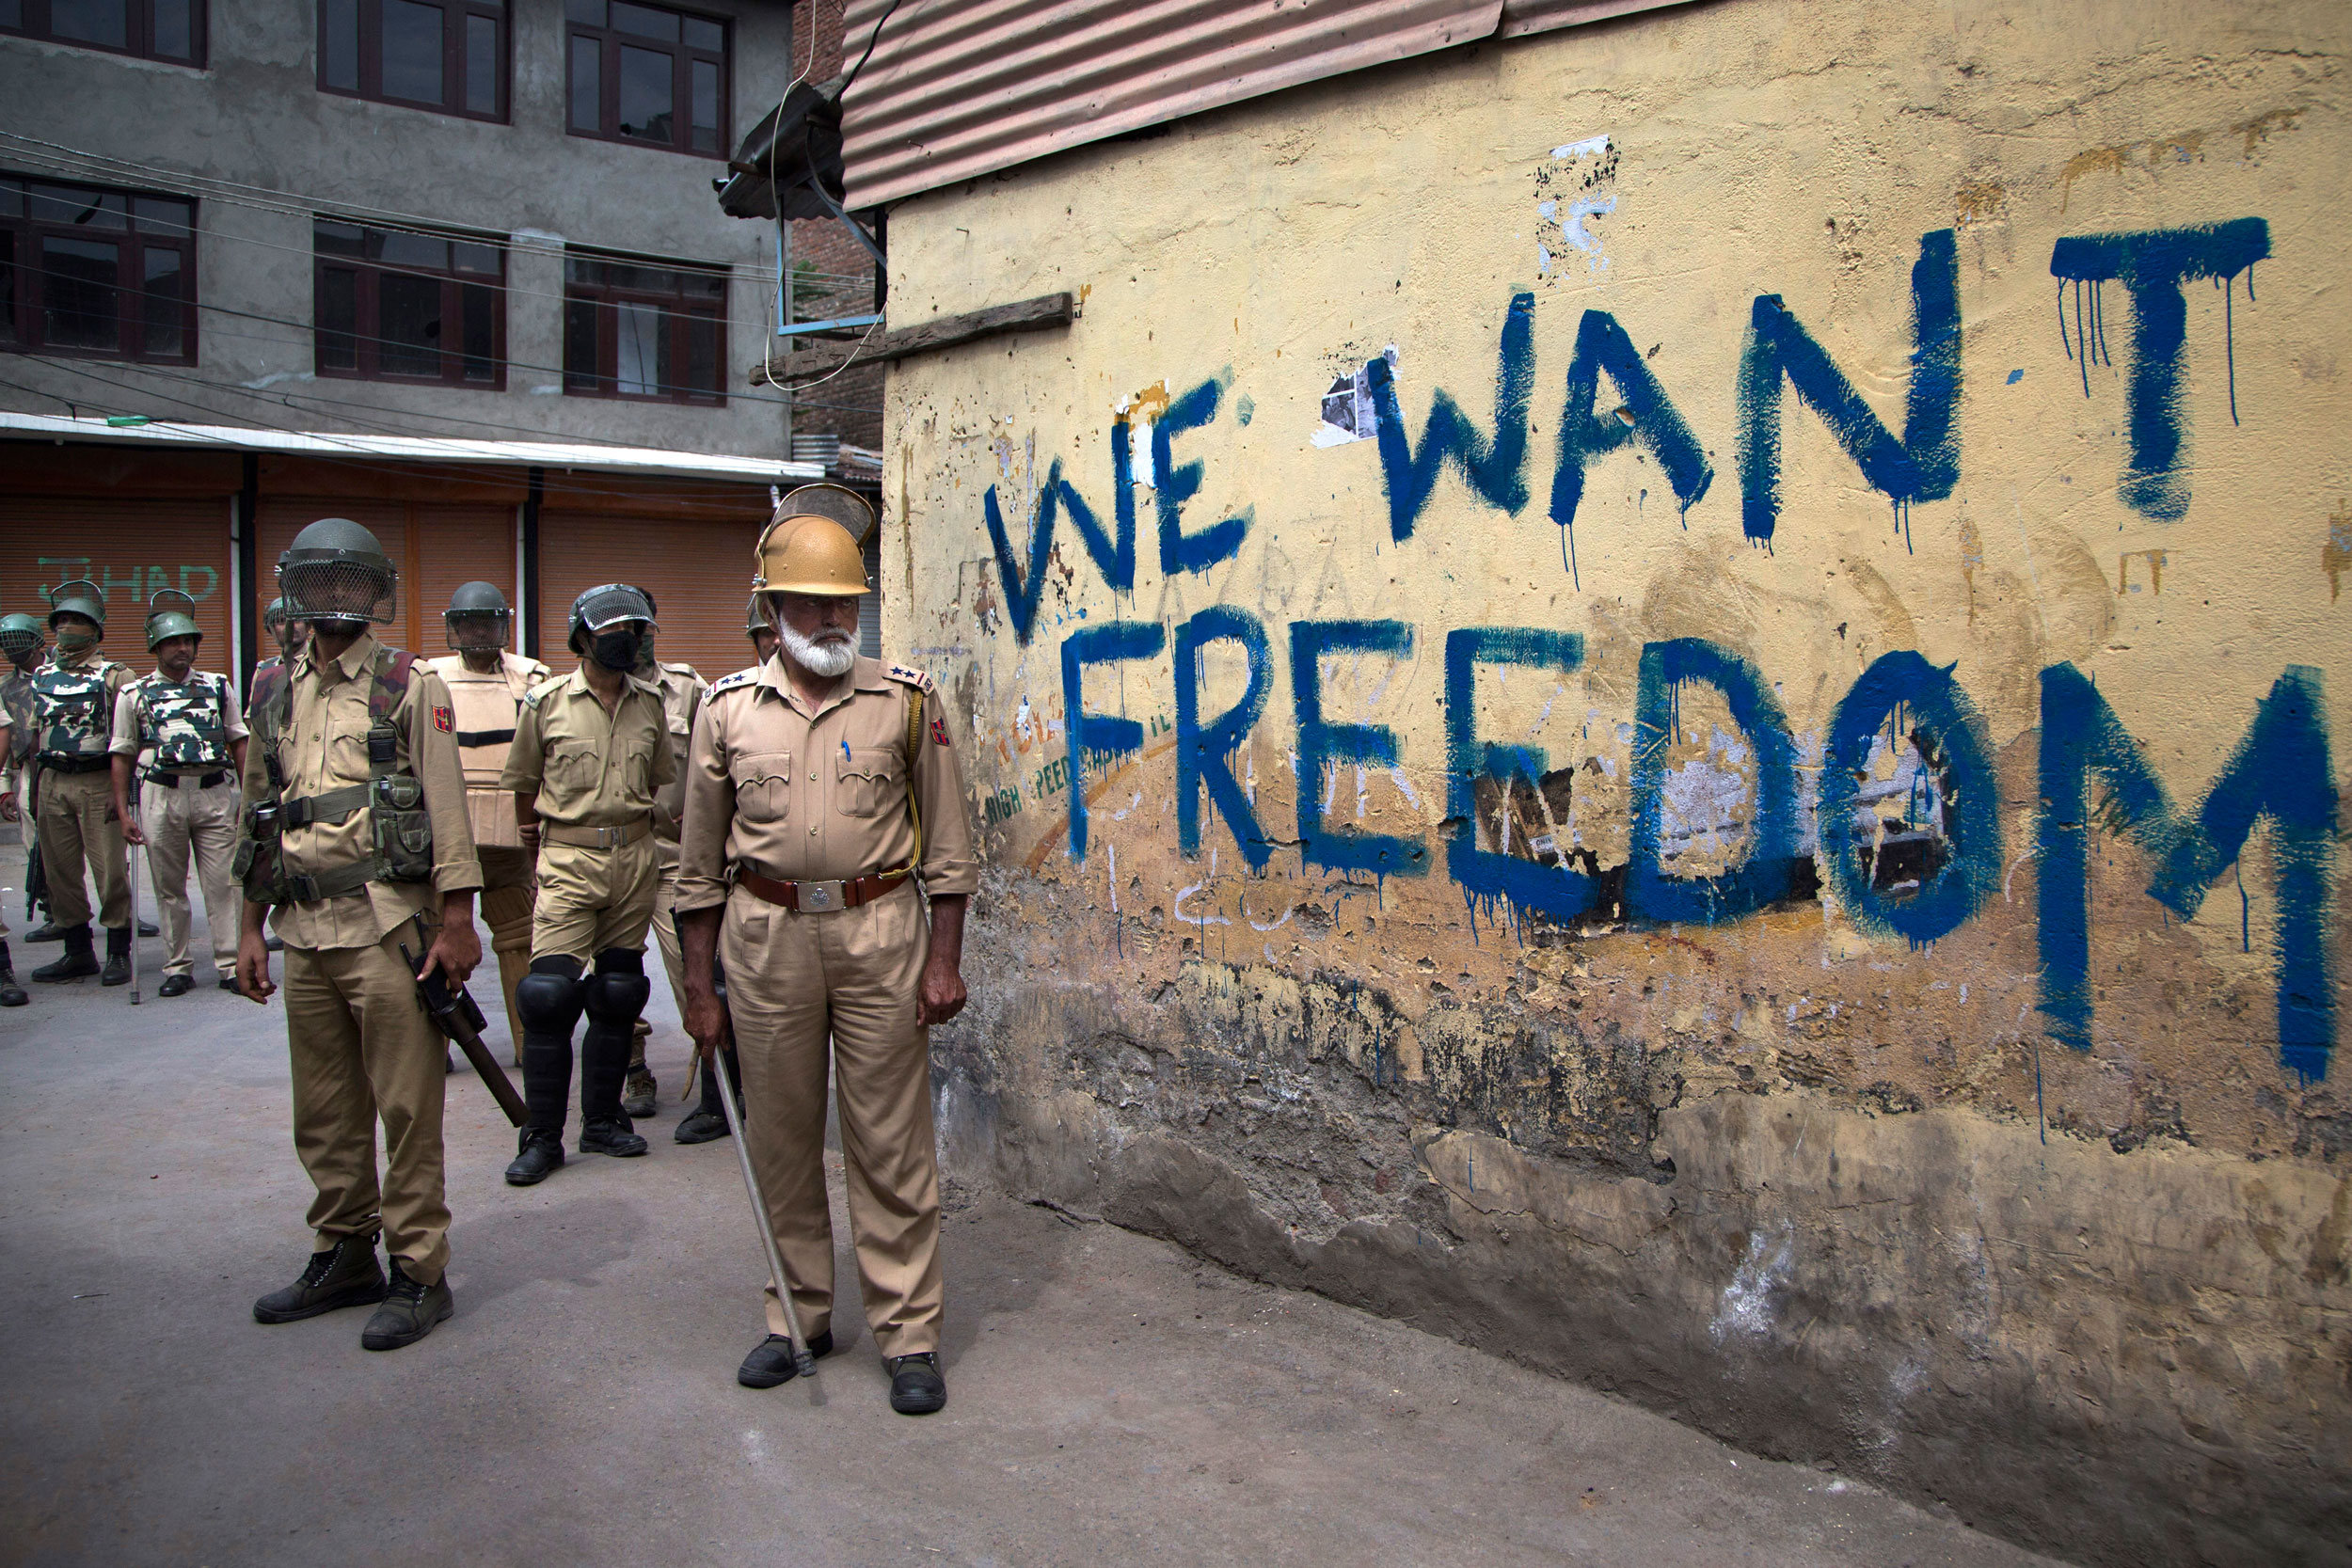 A large part of Kashmir remains under curfew since August 6, when the union government abrogated Article 370 and moved the bill to bifurcate the state into two.